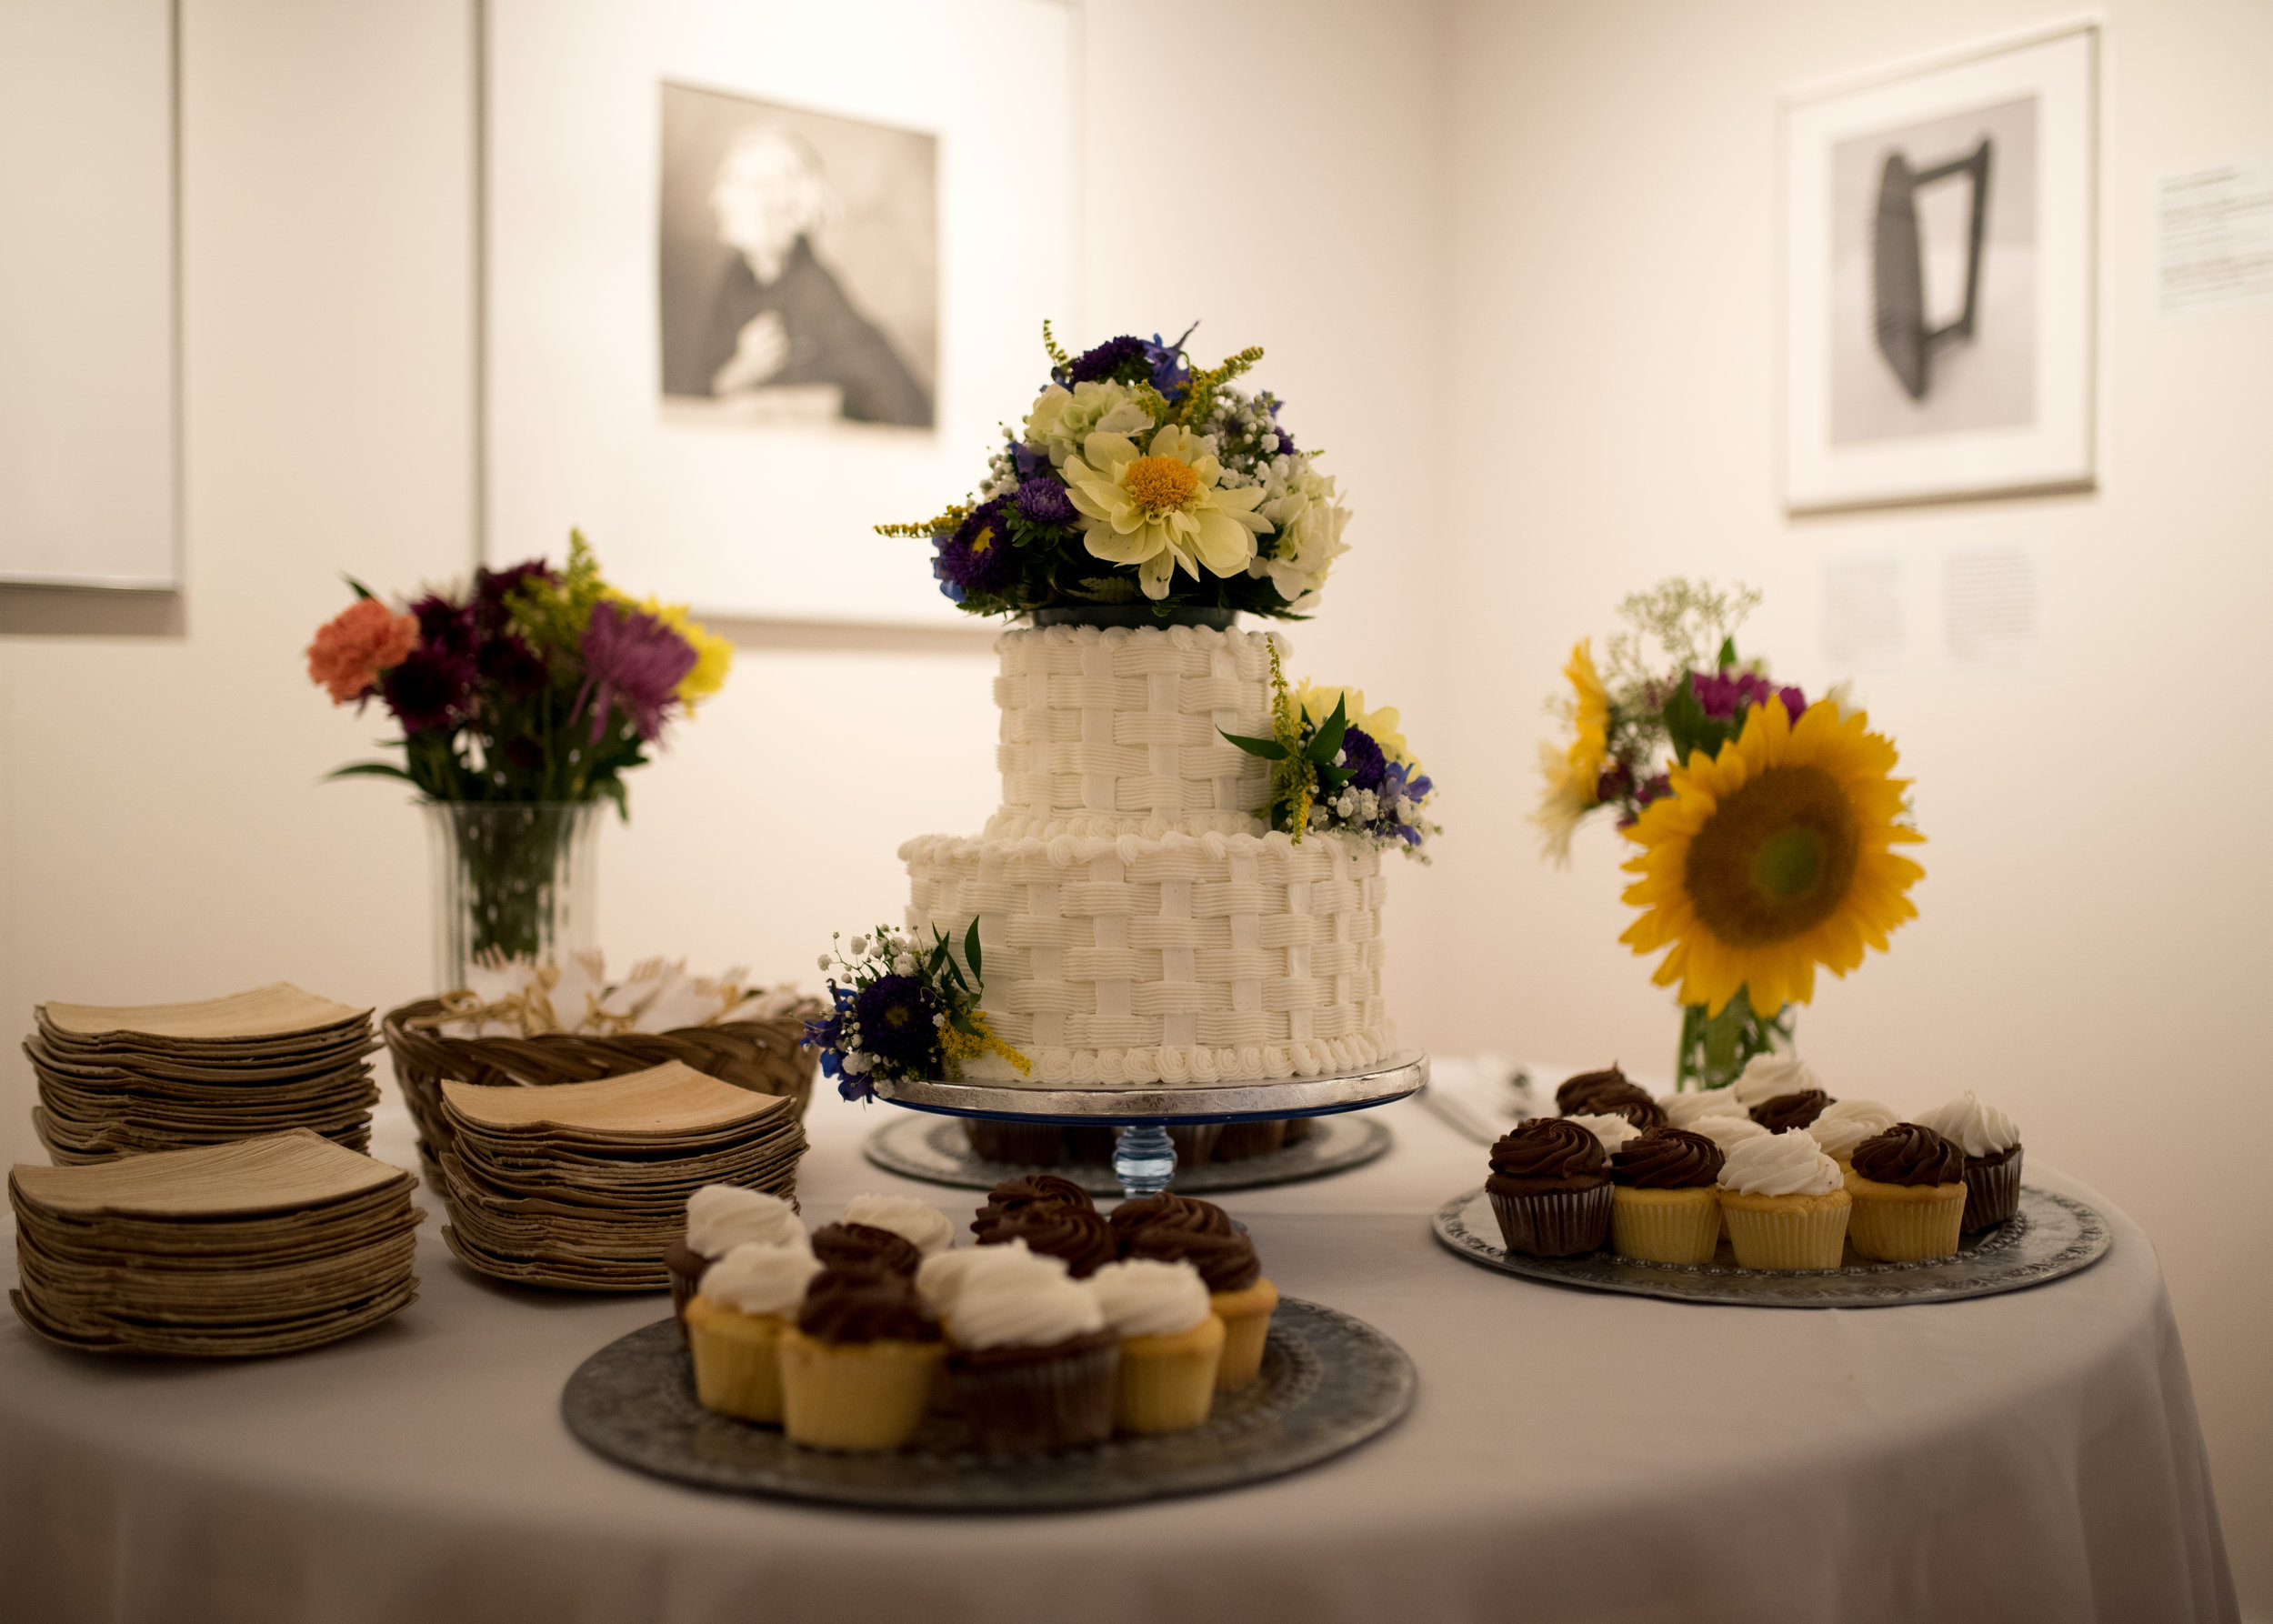 fitchburg-art-museum-wedding-6.jpg